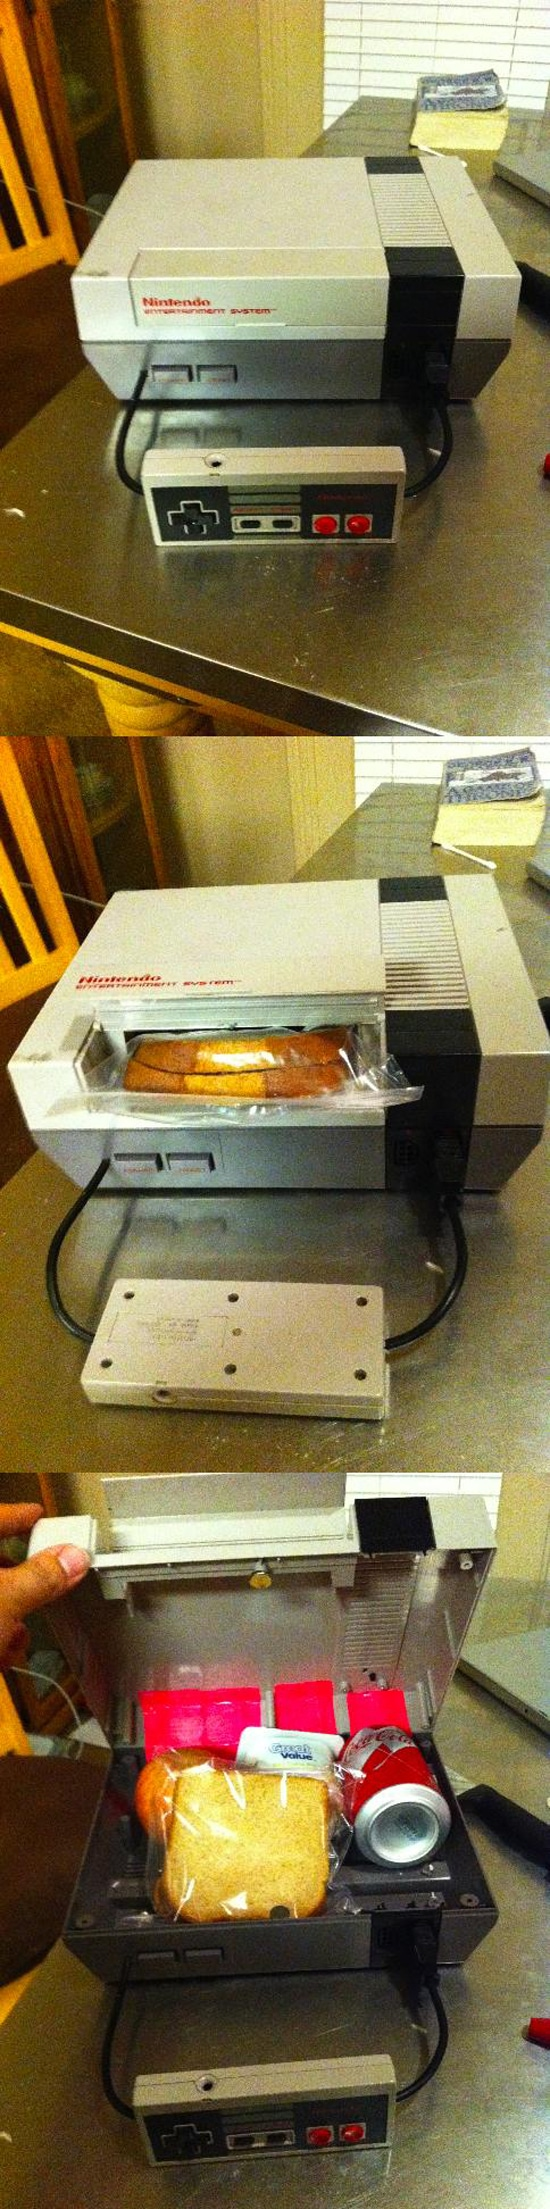 Retro Nintendo Entertainment System Lunch